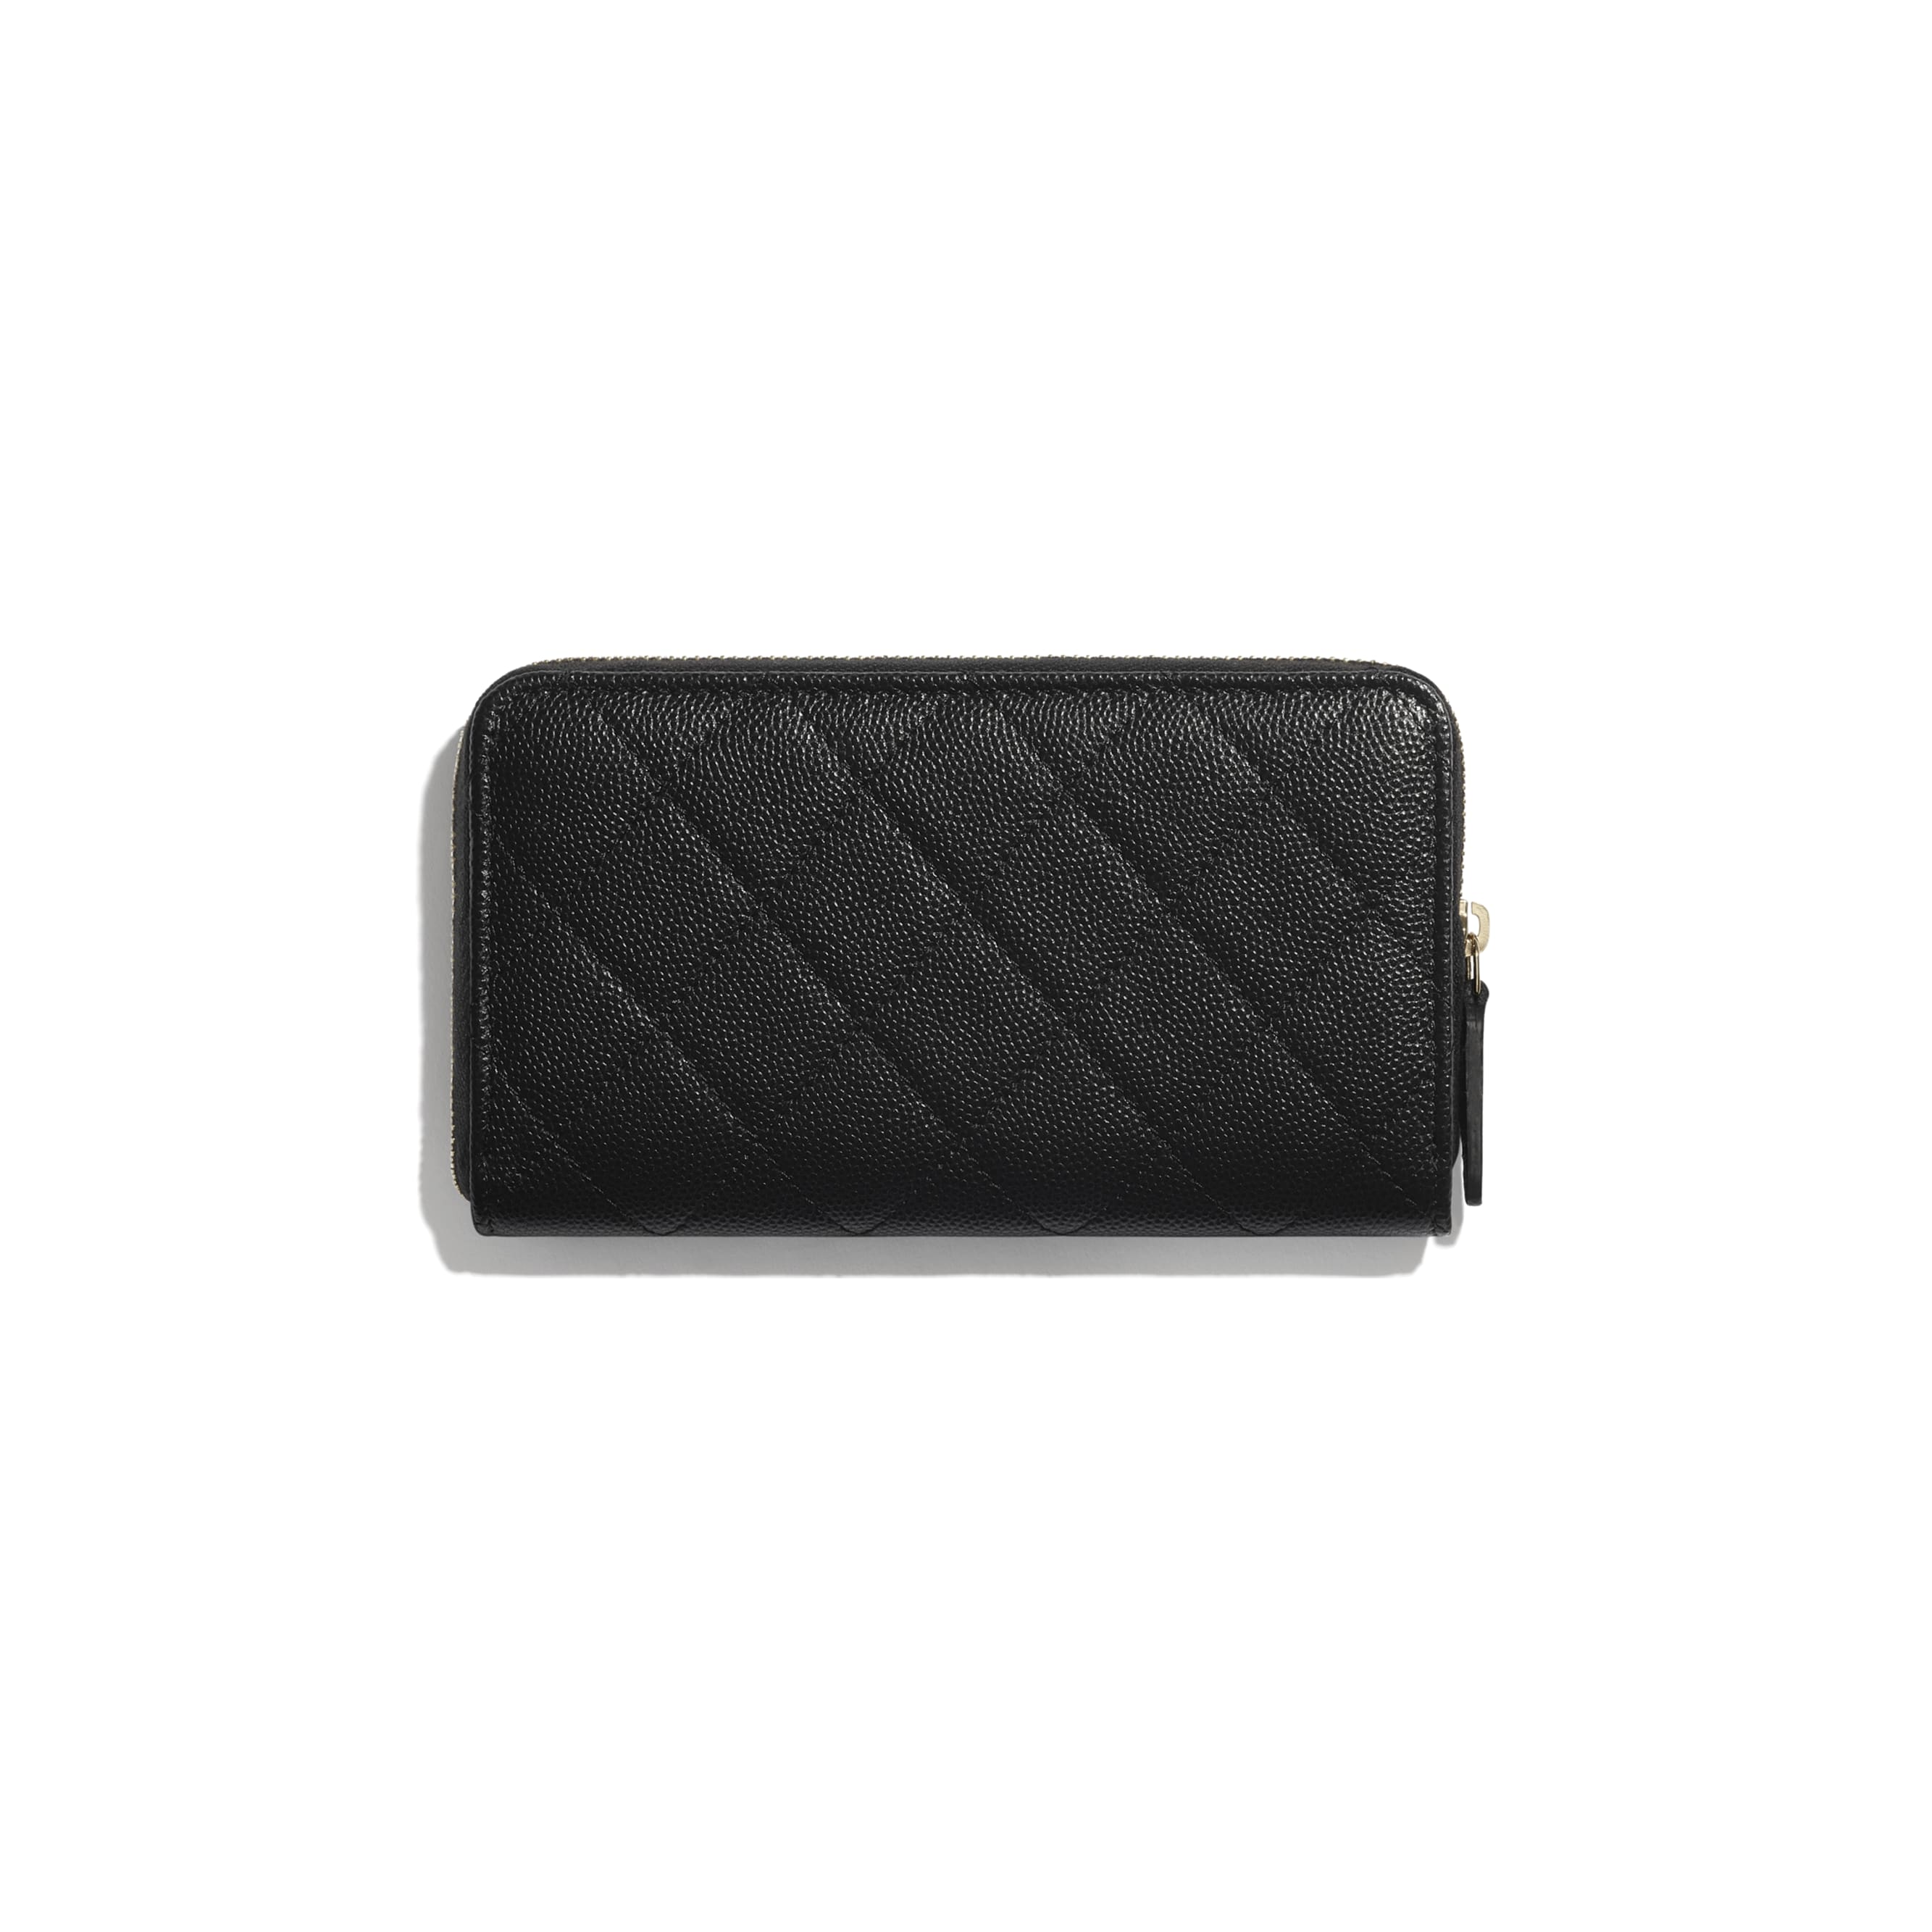 Zip Wallet - Black - Grained Calfskin & Gold-Tone Metal - CHANEL - Alternative view - see standard sized version